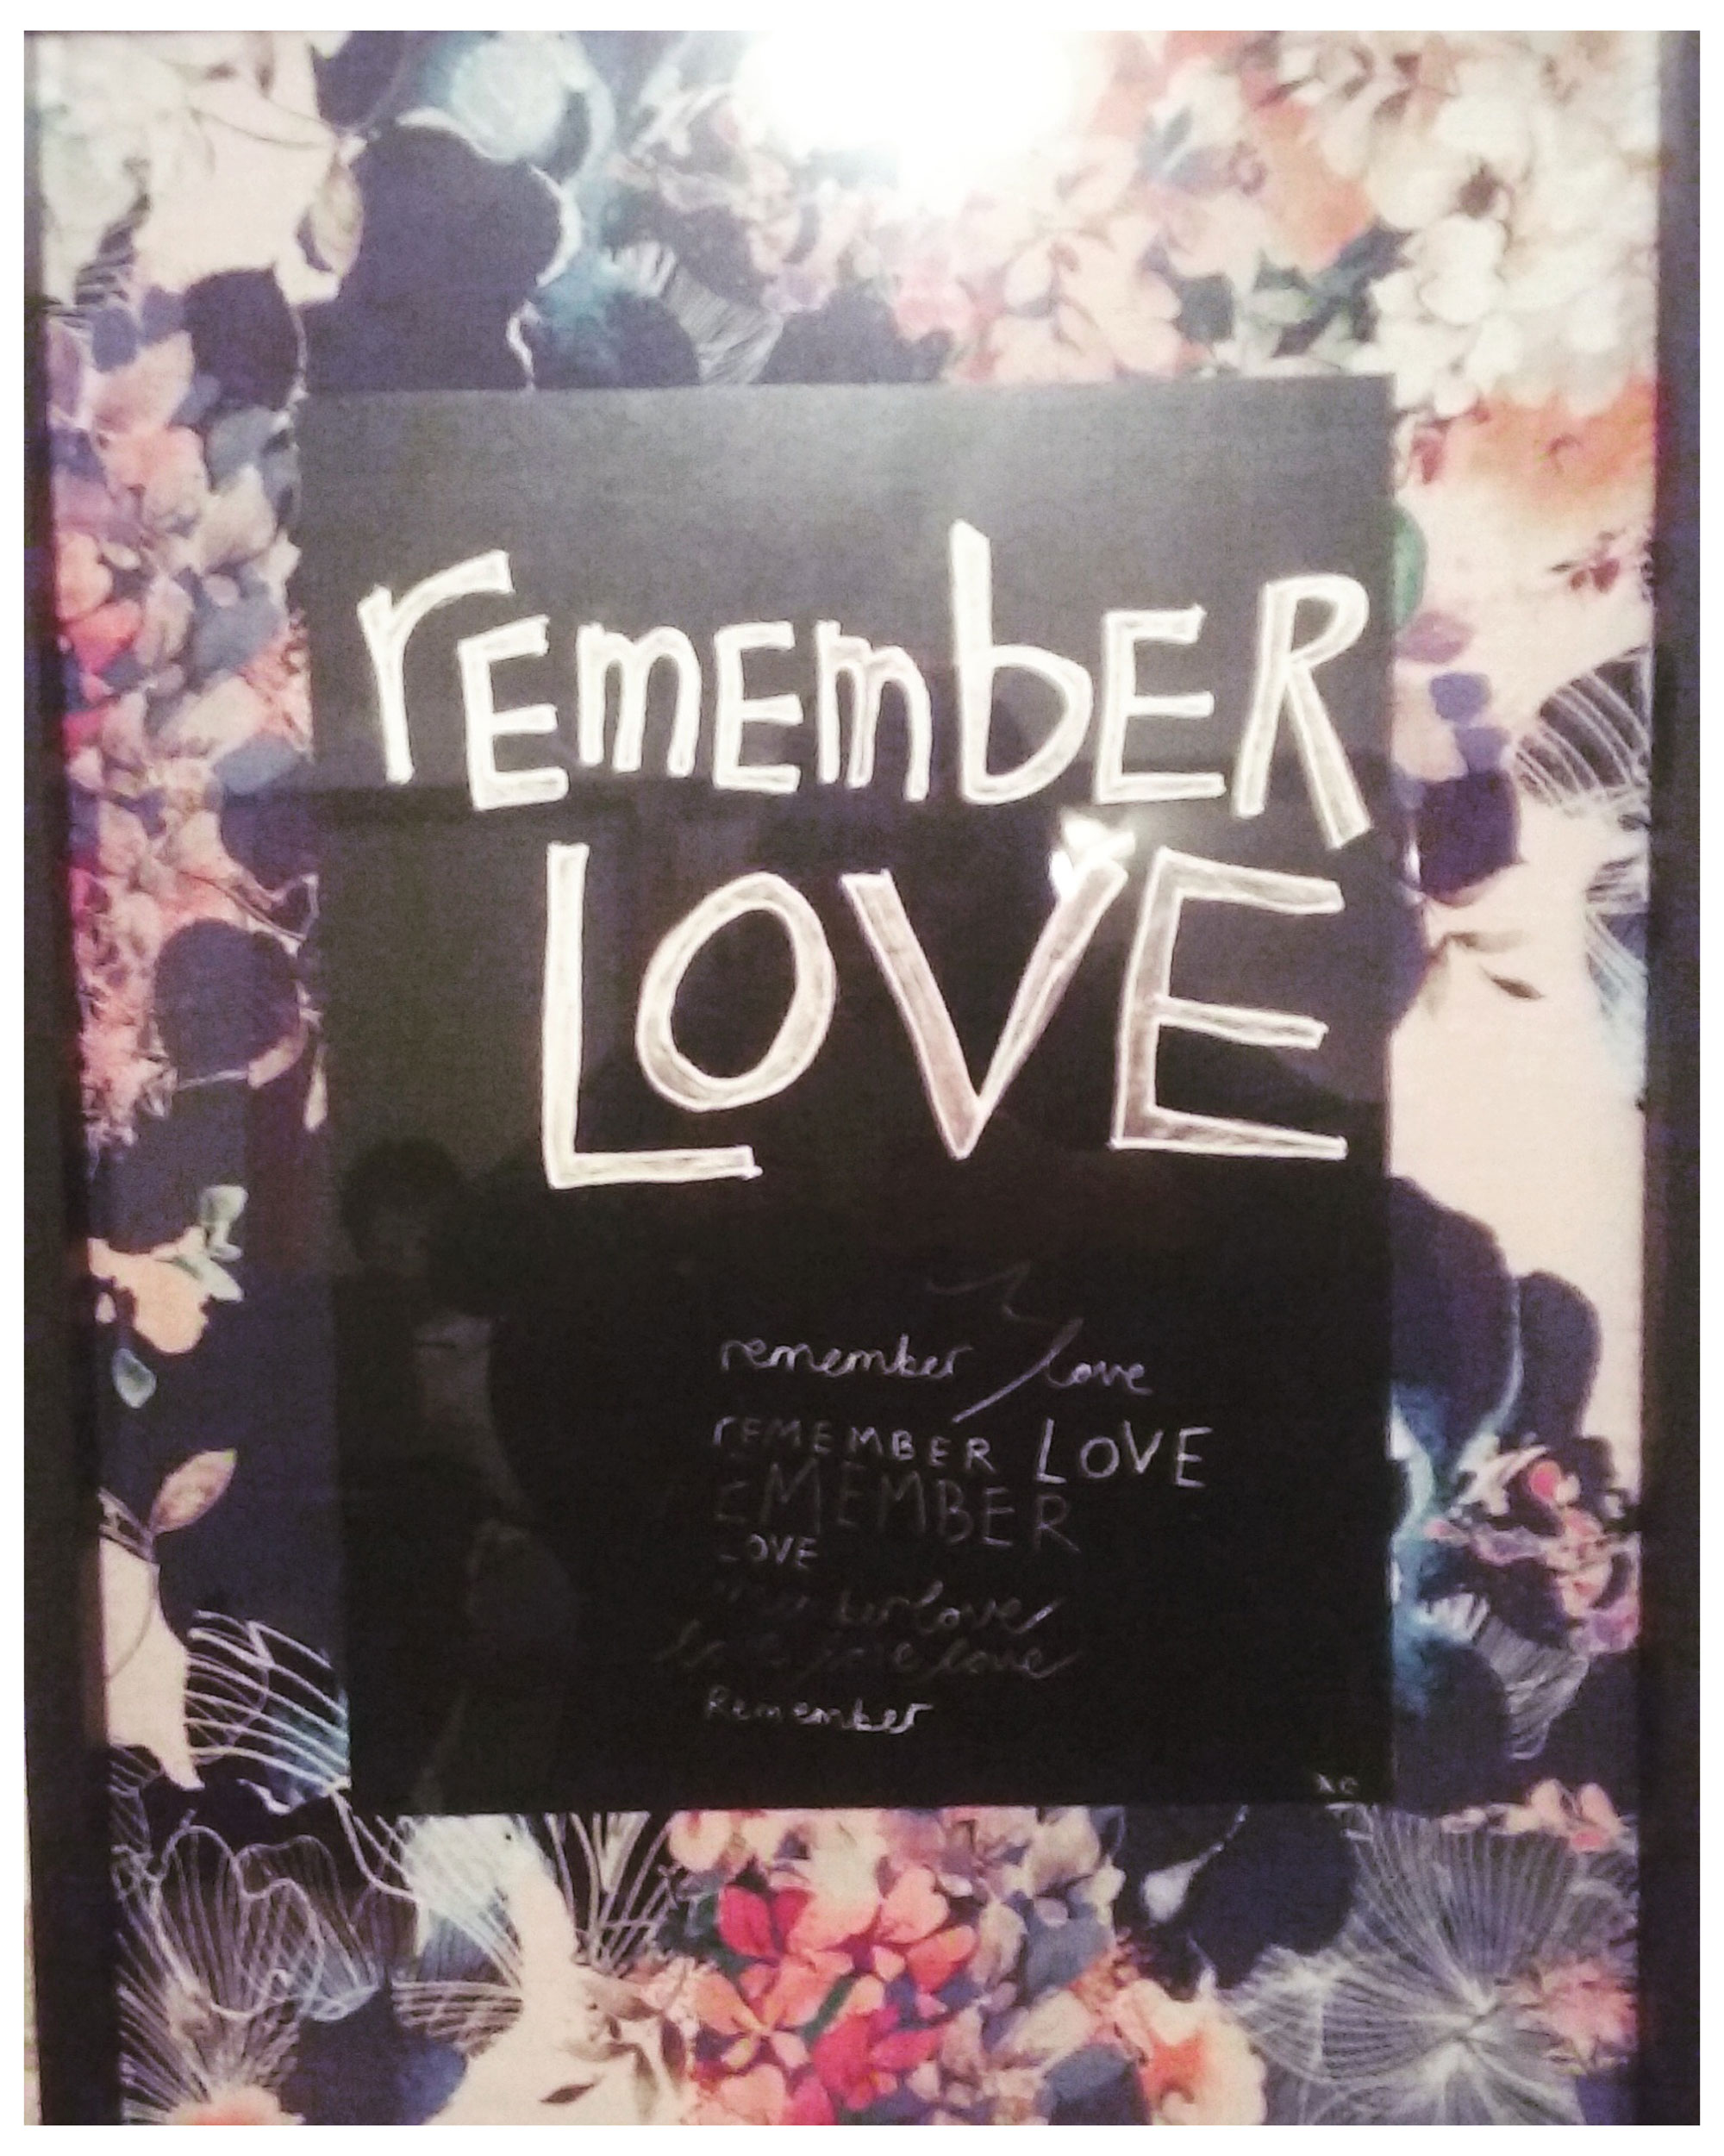 Nadine's photograph of remember love, 2017